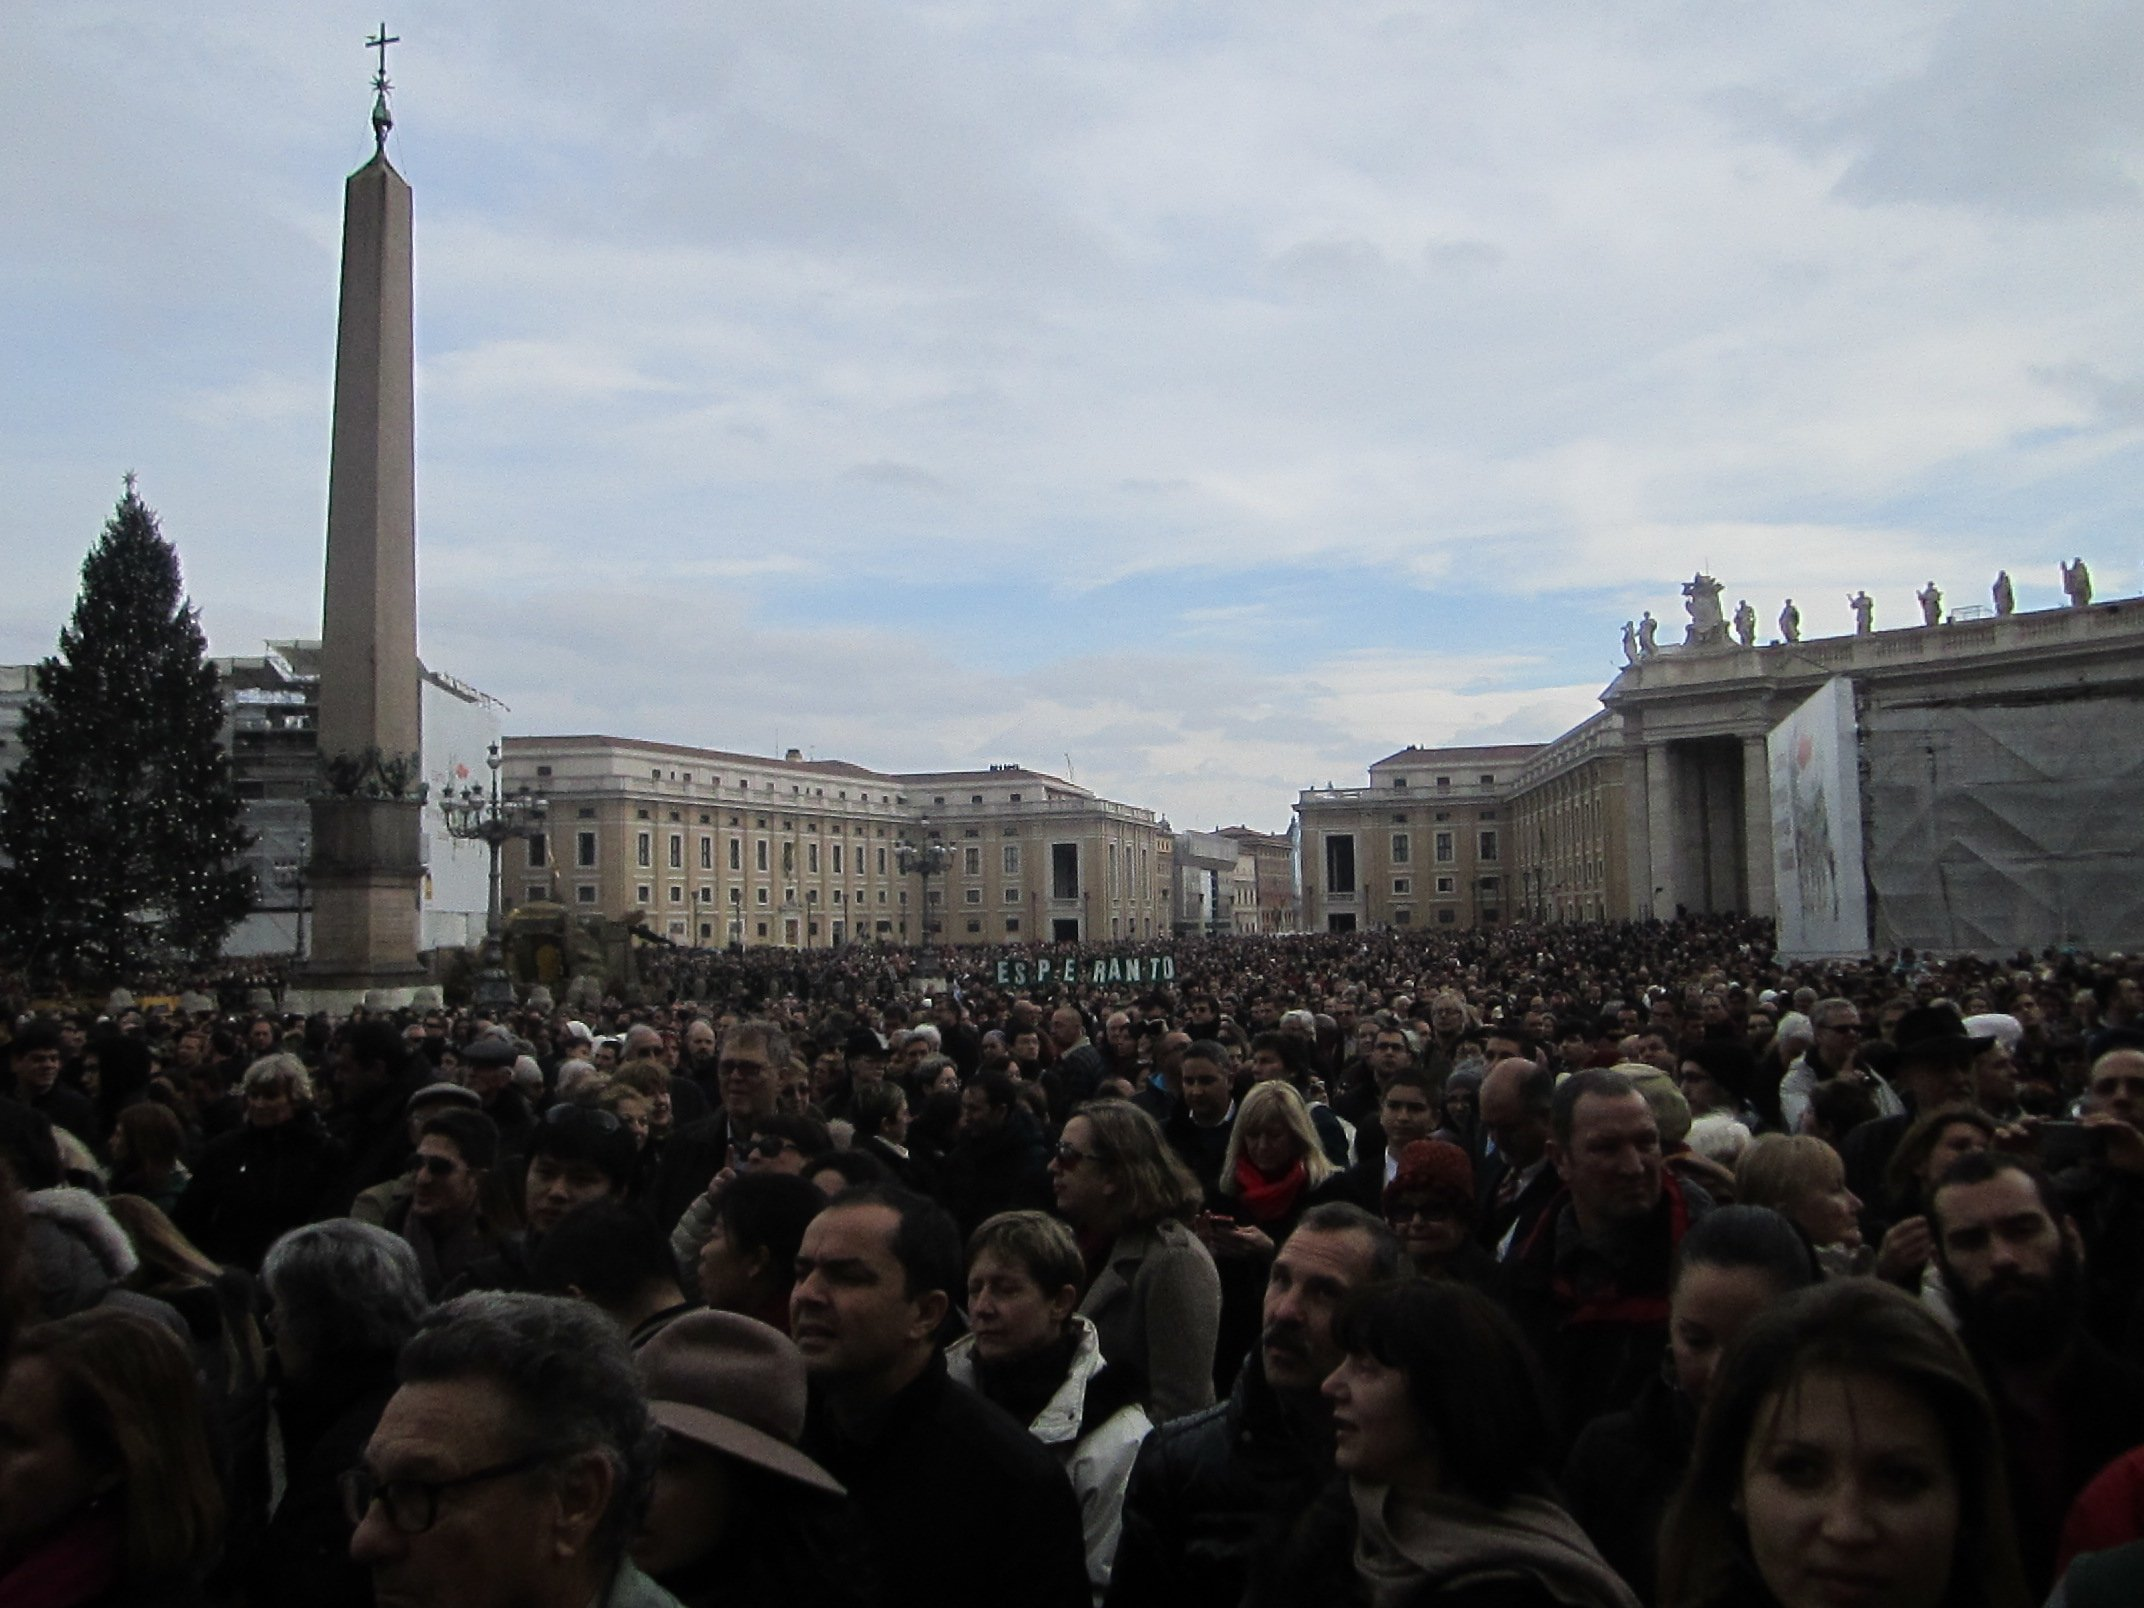 St. Peter's Square on Christmas Day